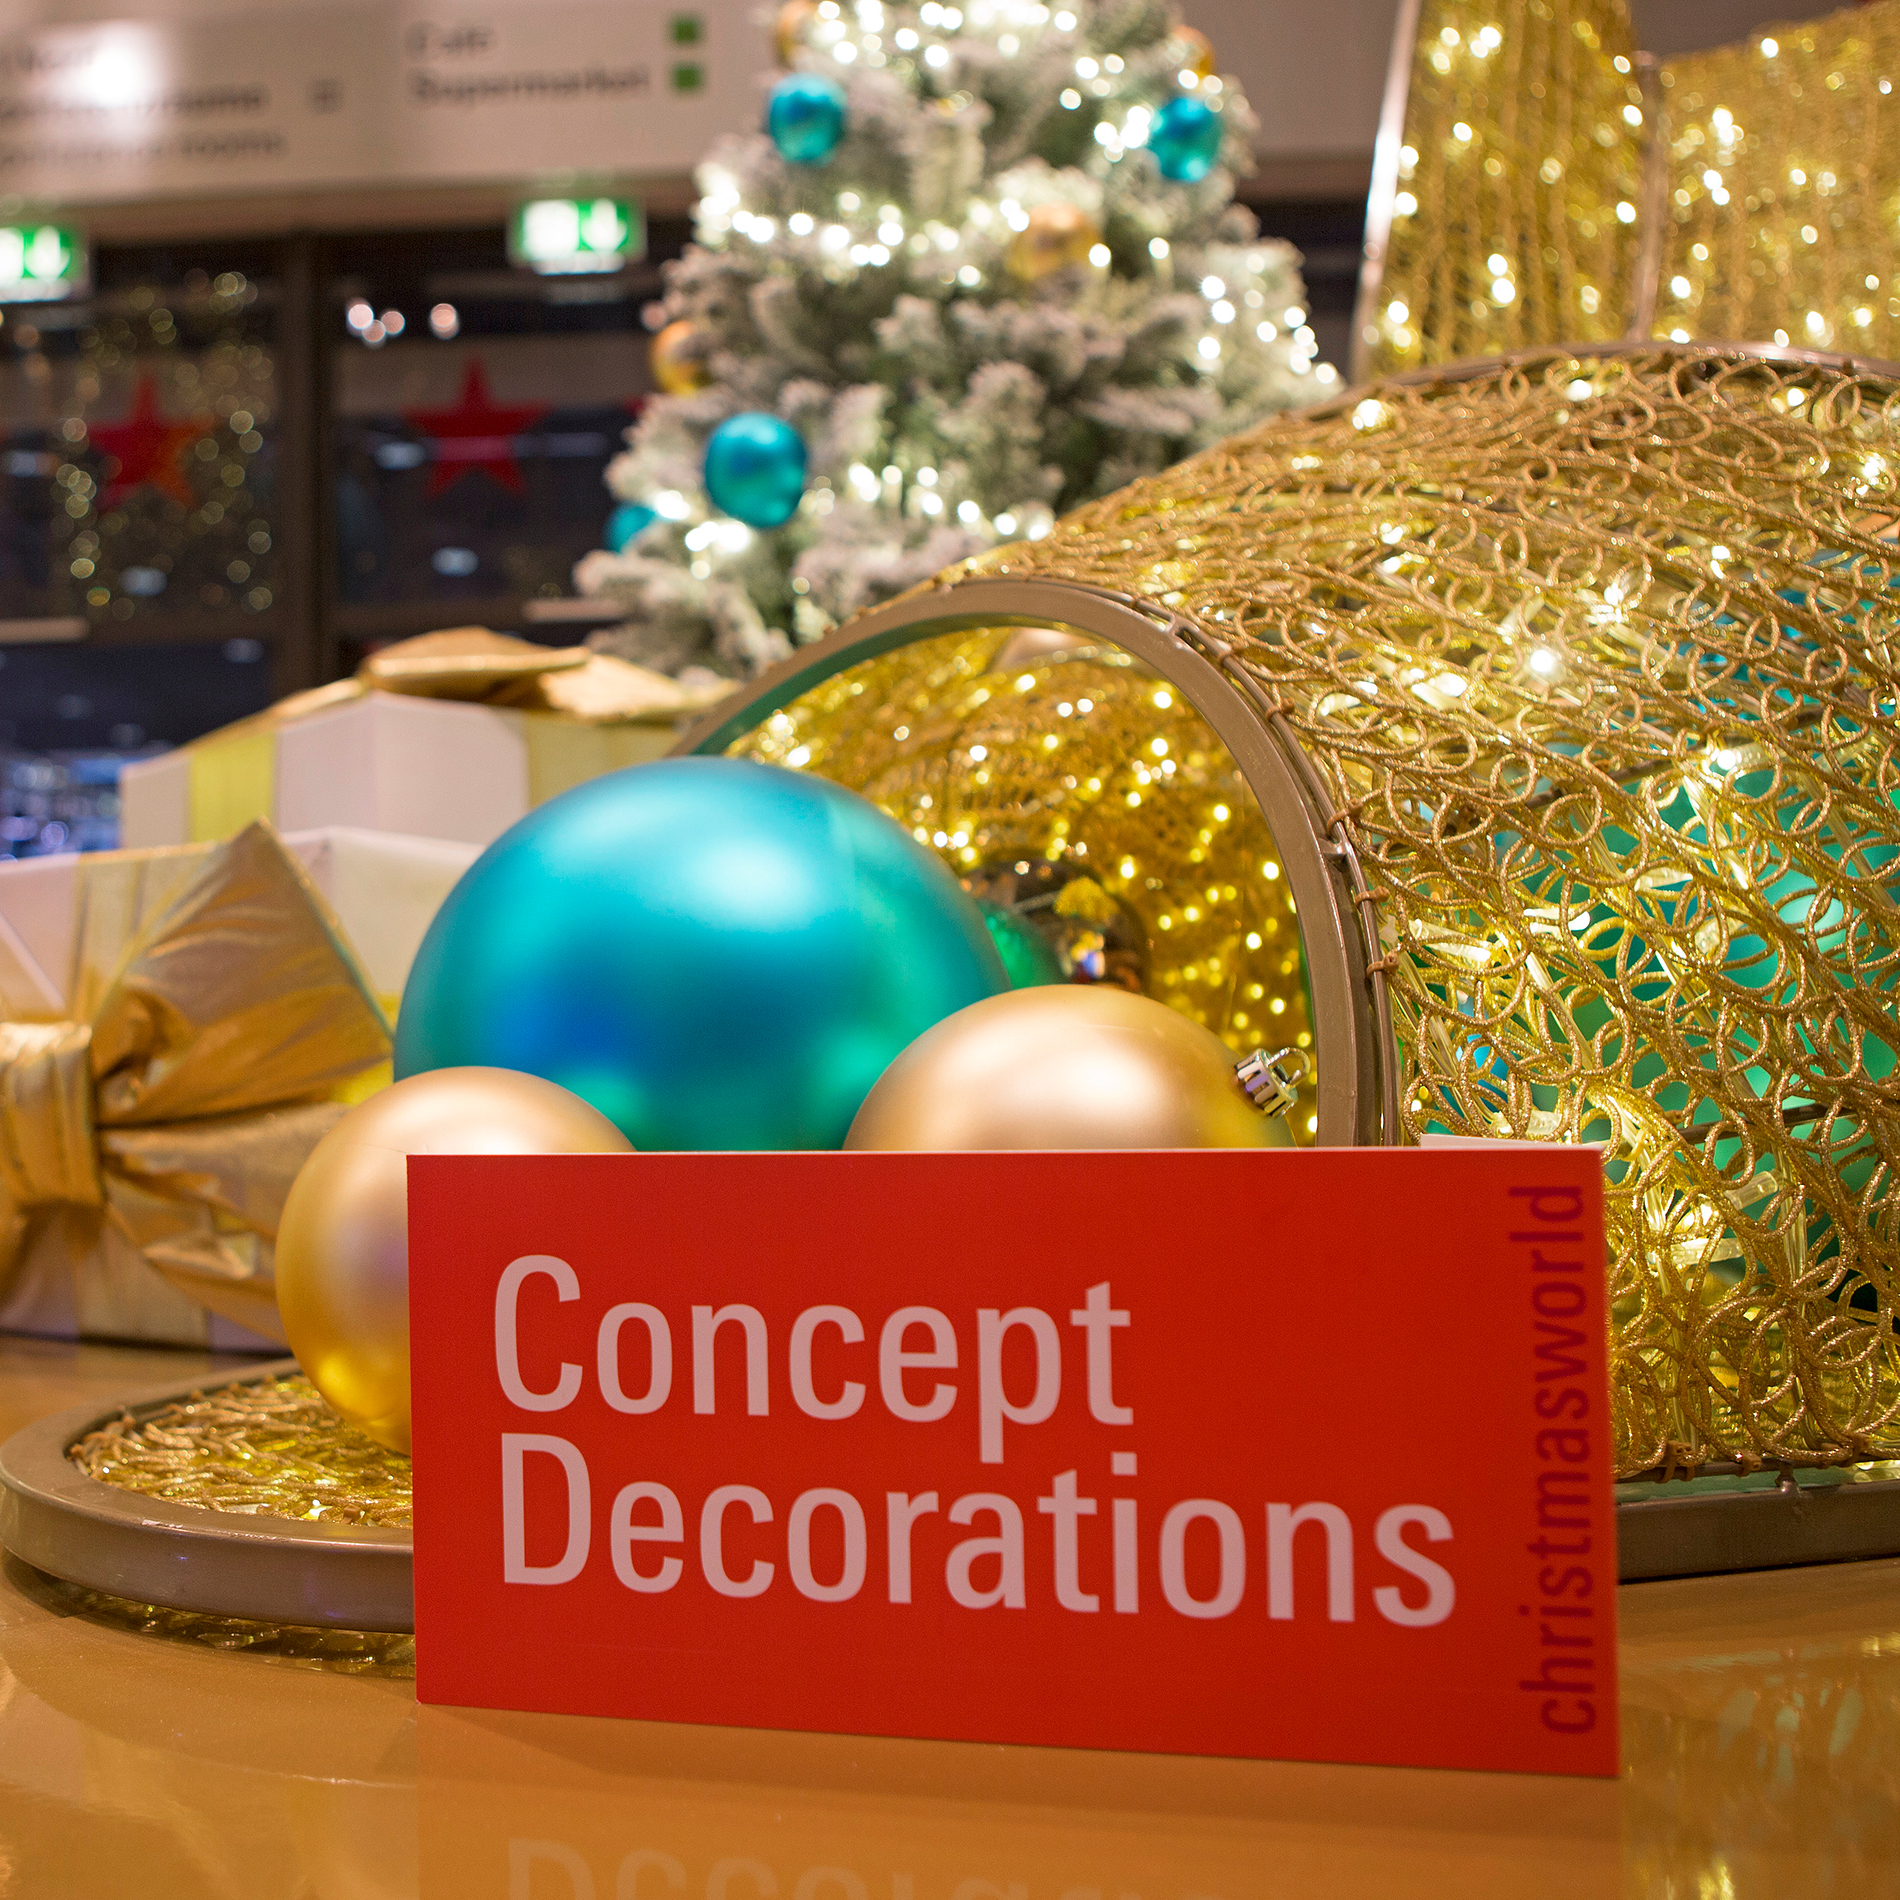 Concept Decoration logo at an exhibition stand at Christmasworld